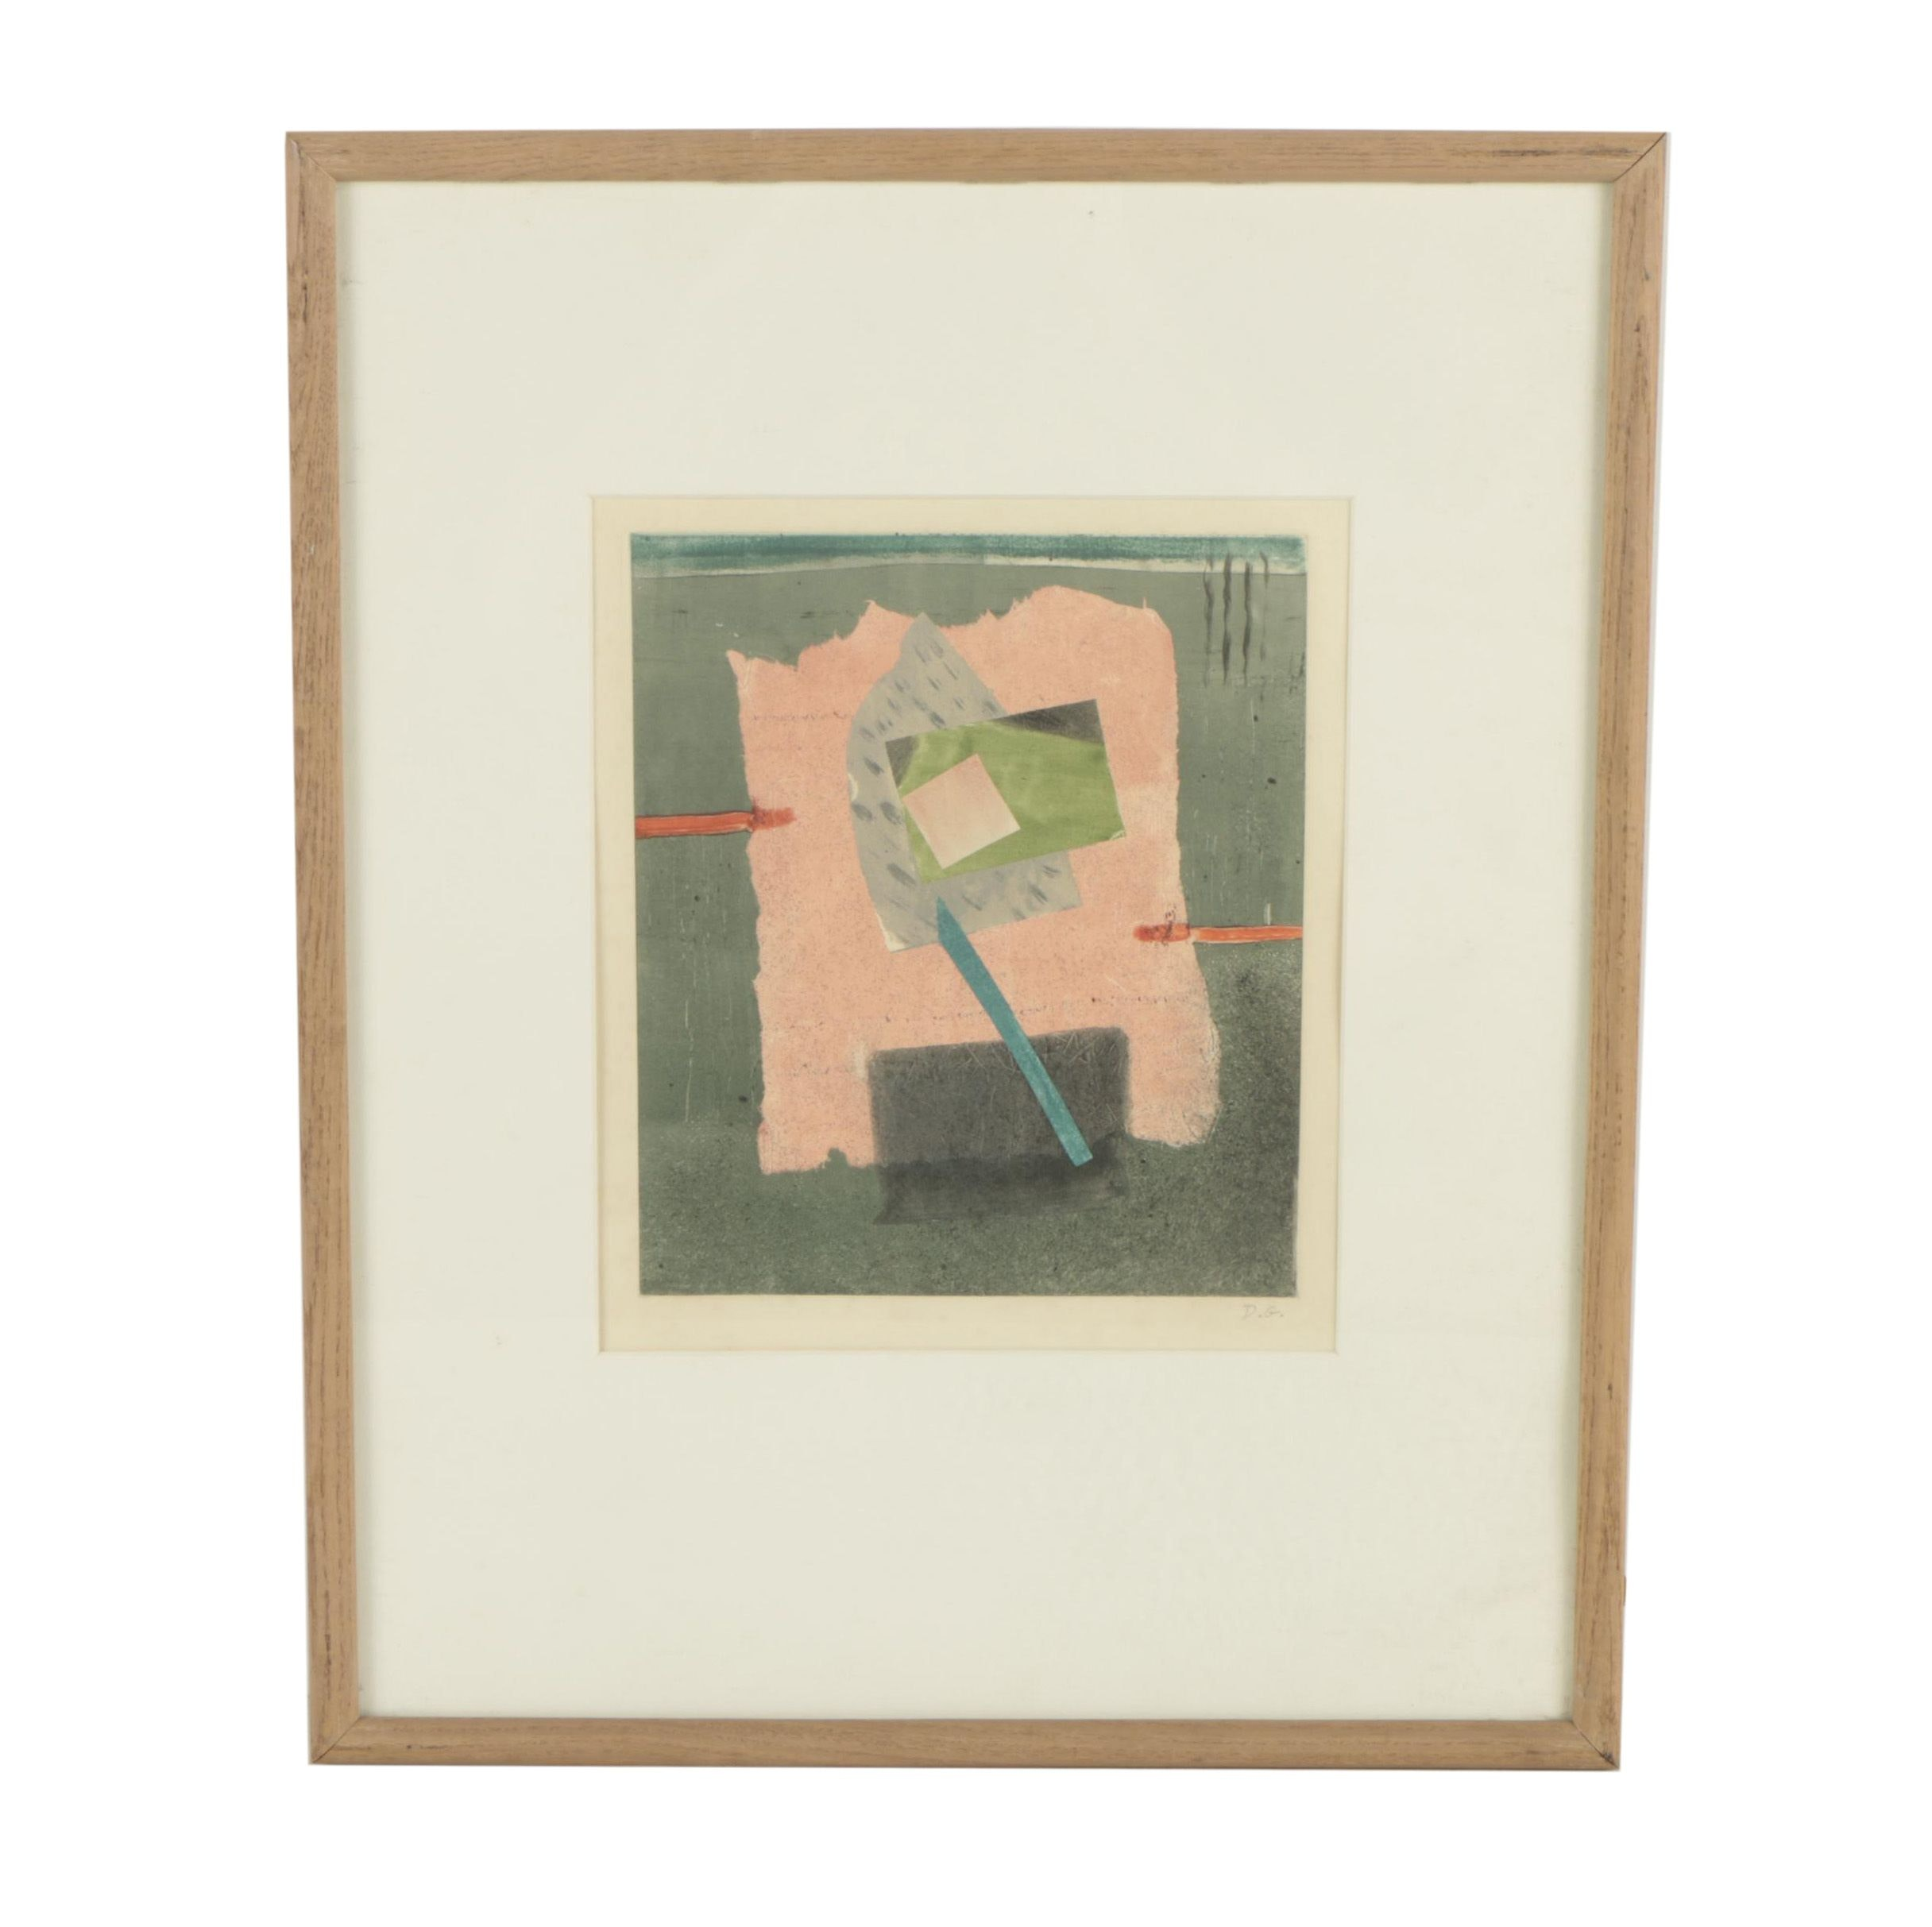 D.G. Circa 1960s Color Etching of Modernist Abstract Composition